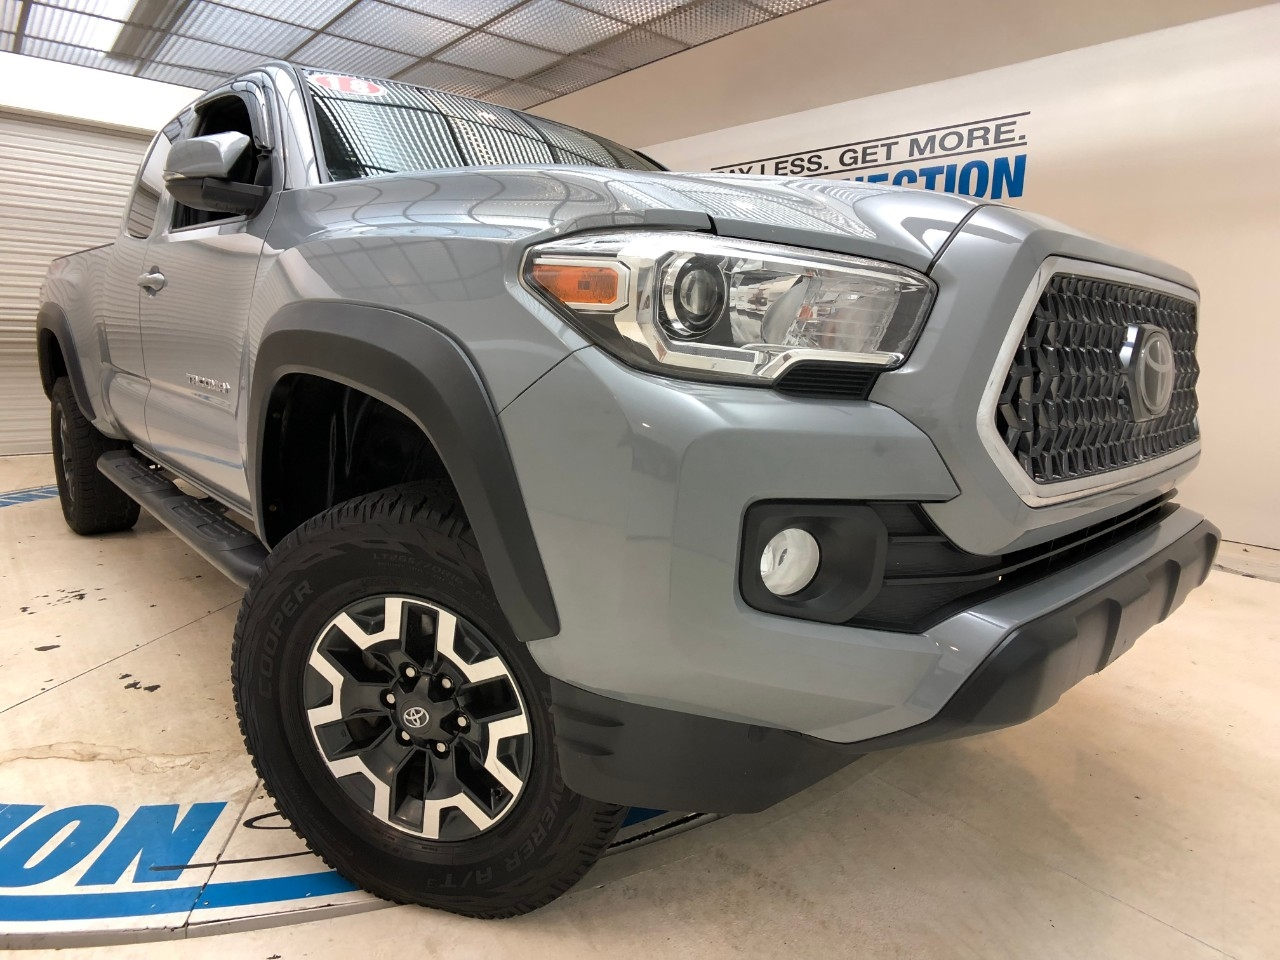 Pre-Owned 2018 Toyota Tacoma TRD OFF ROAD ACCESS CAB 6' BED V6 4X4 AT (NATL)